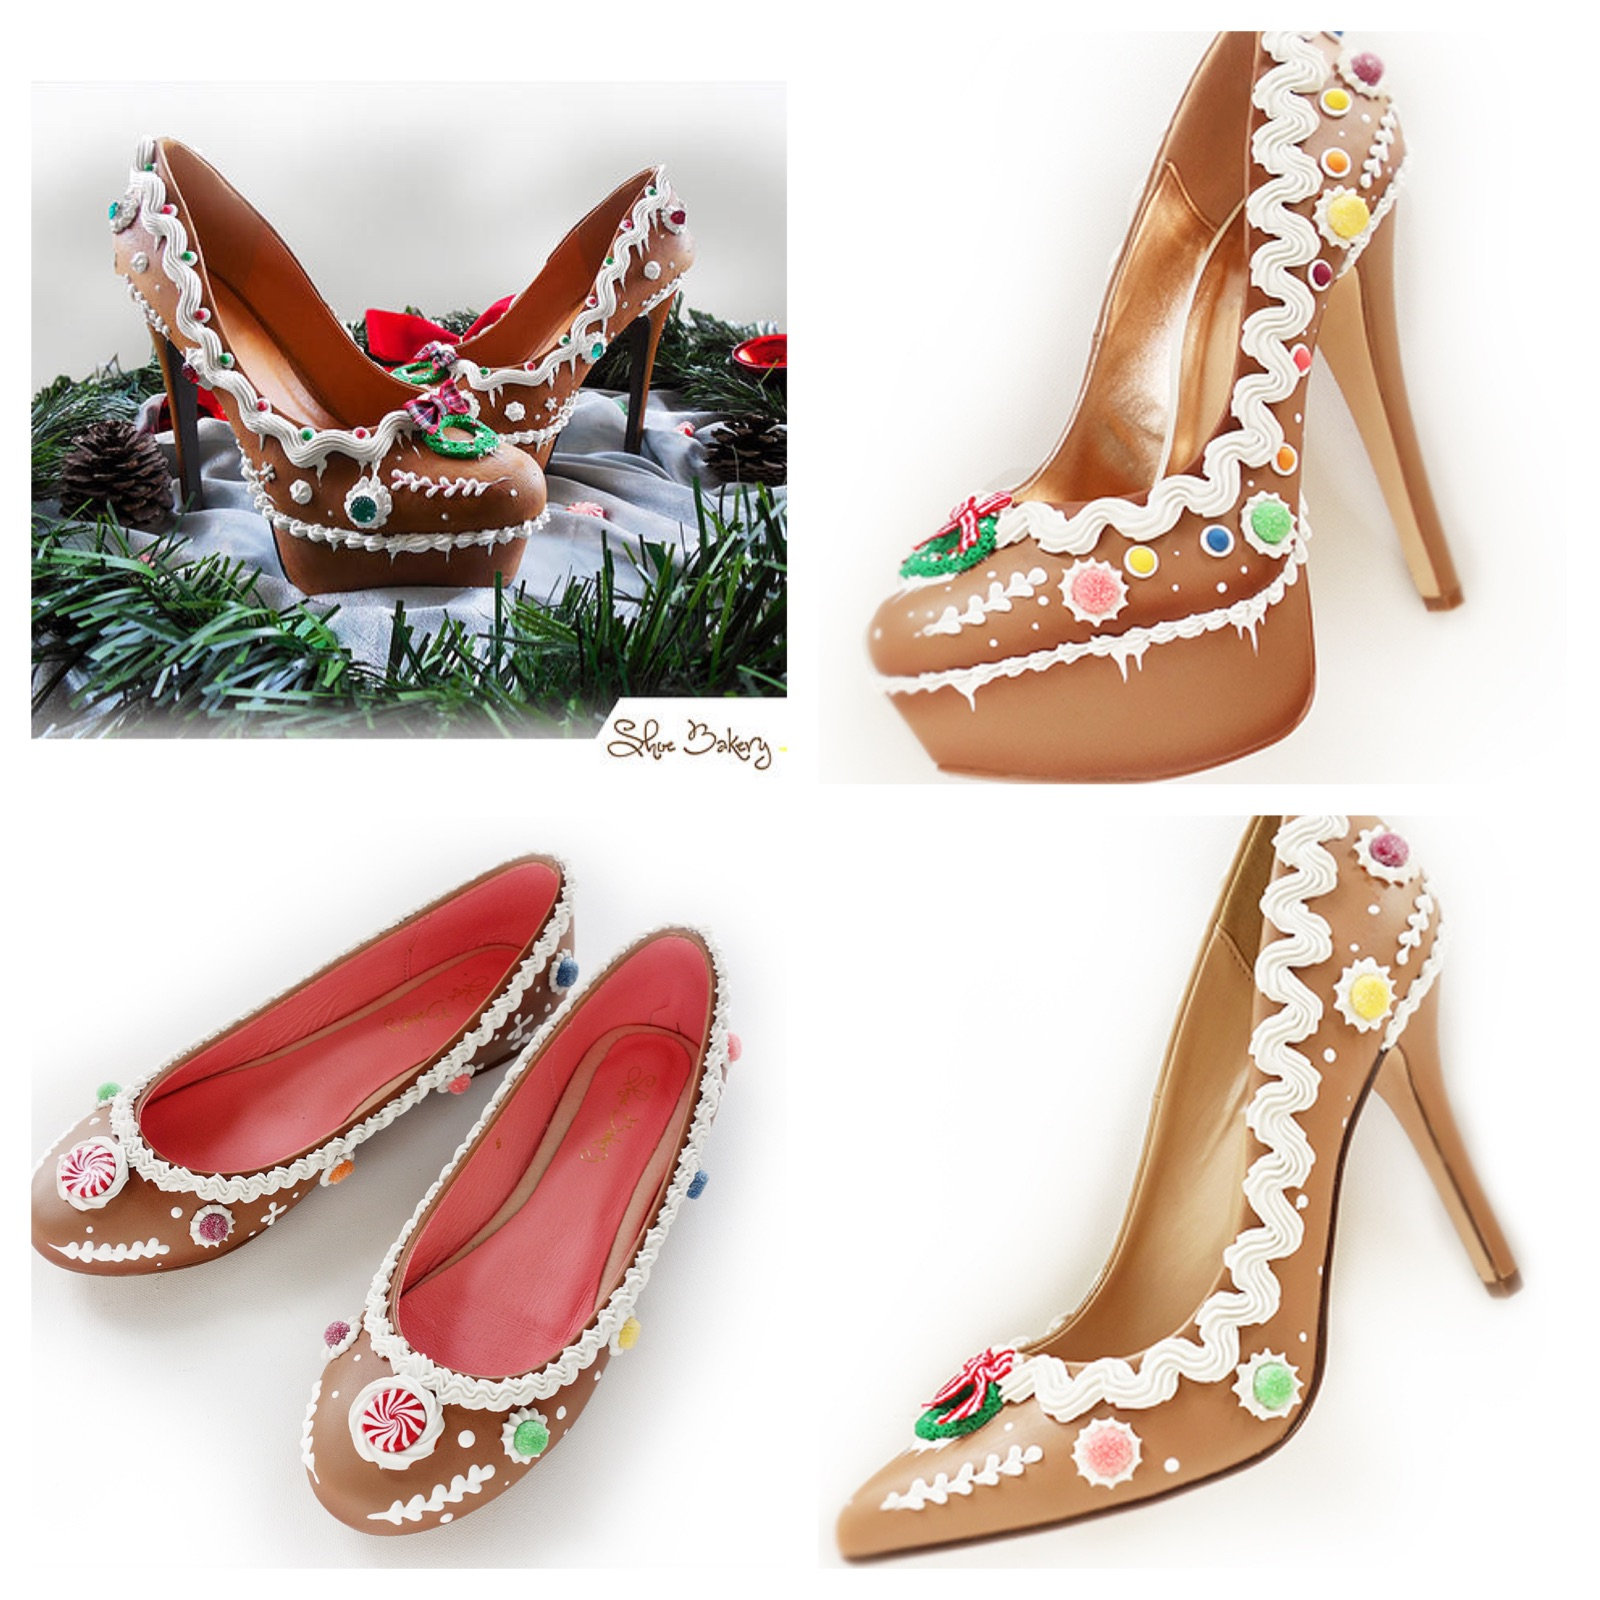 Gingerbread Shoes from Shoe Bakery